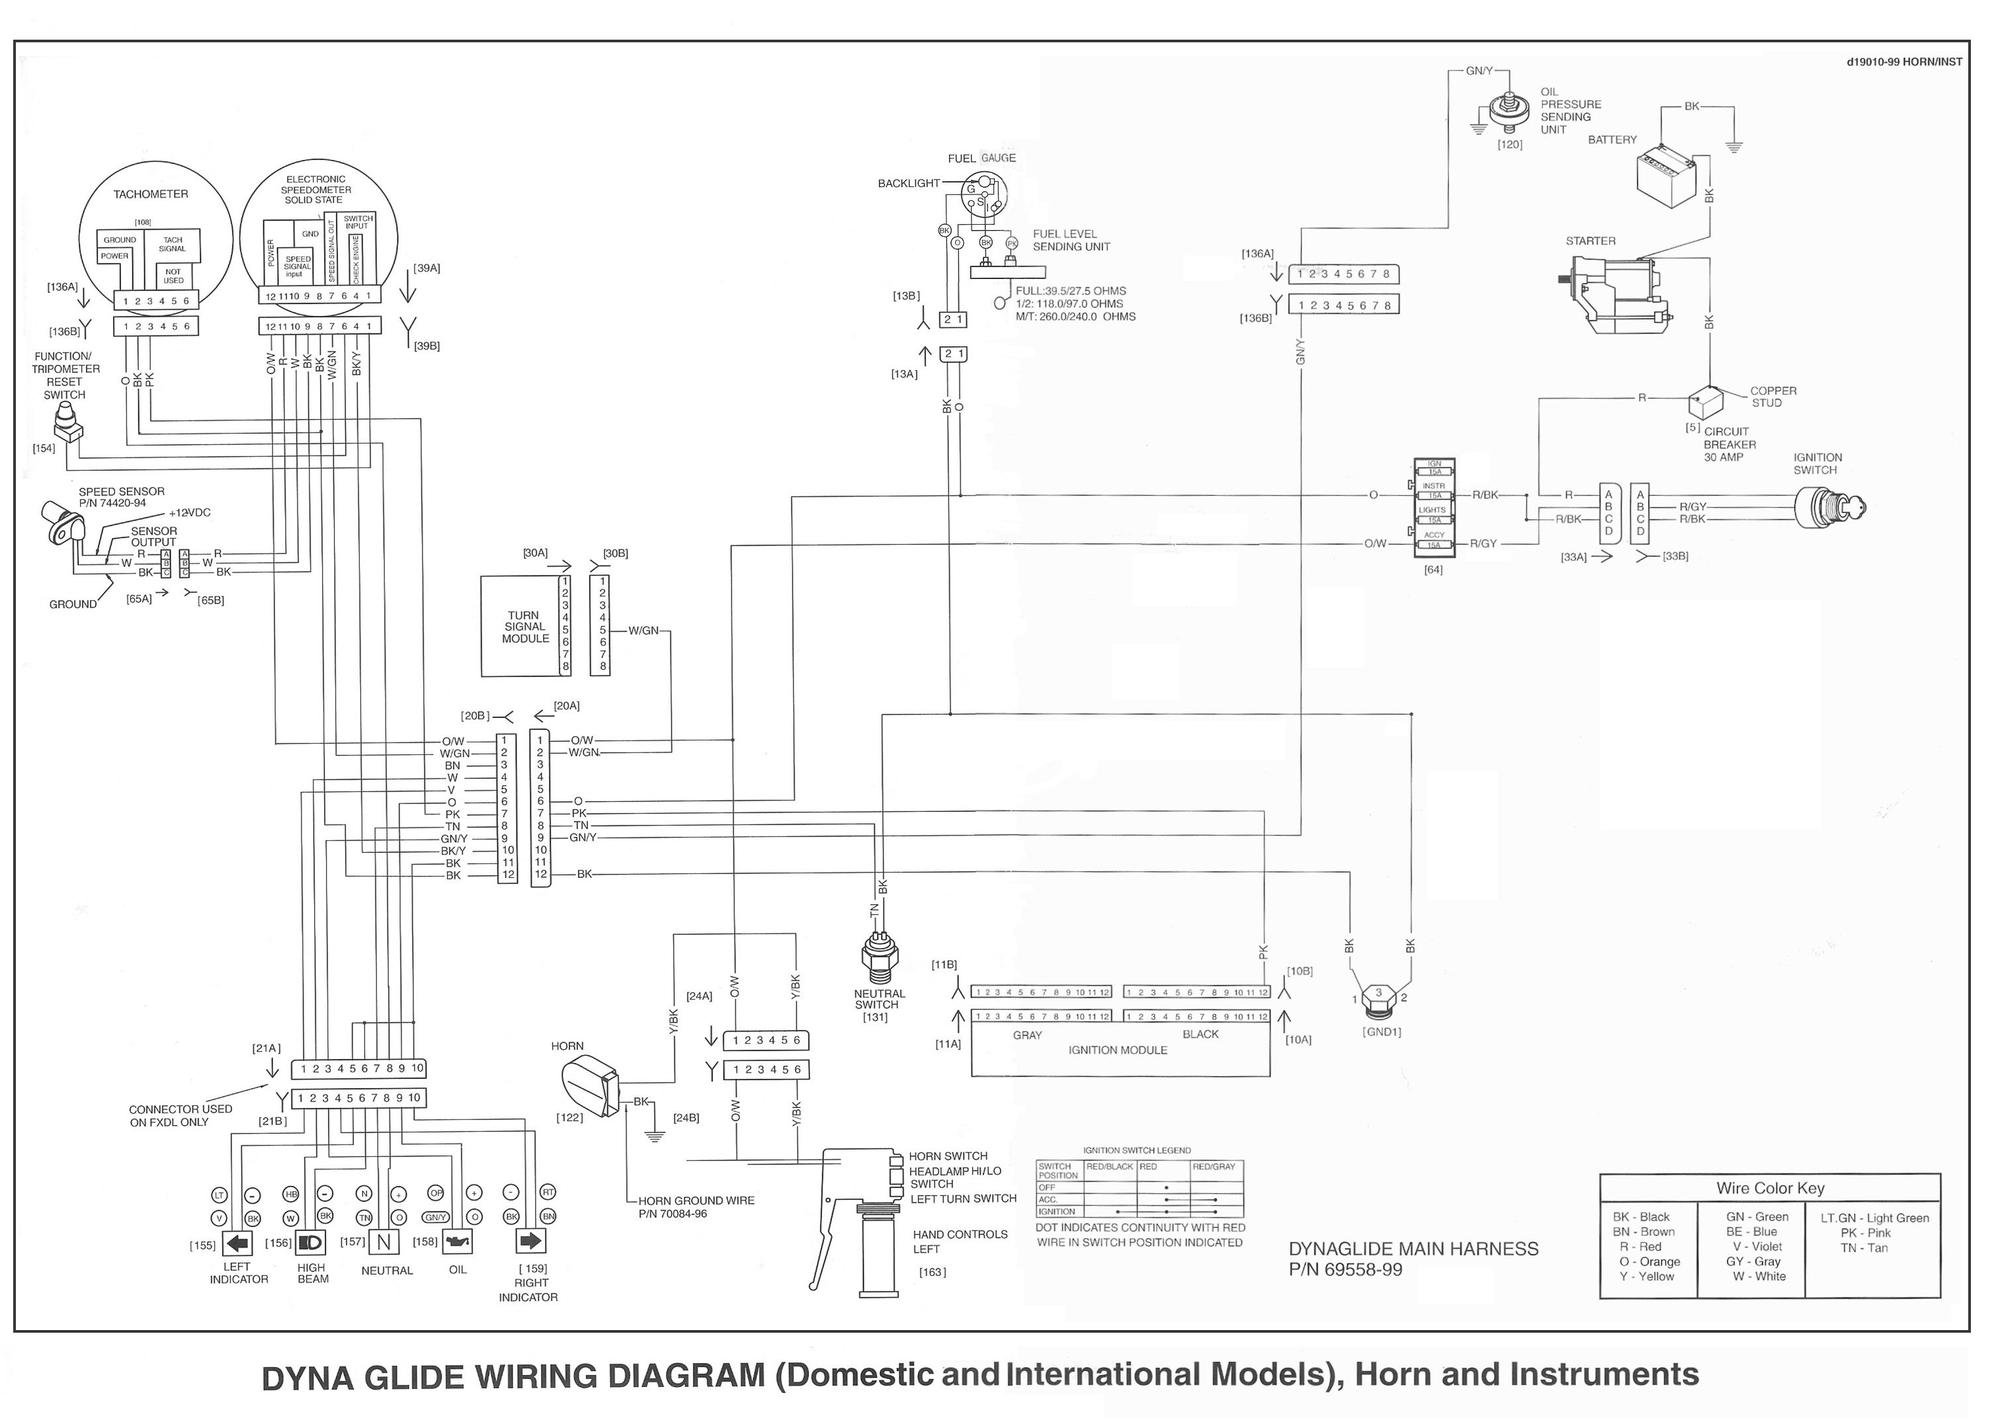 2001 Wide Glide Wiring Diagram